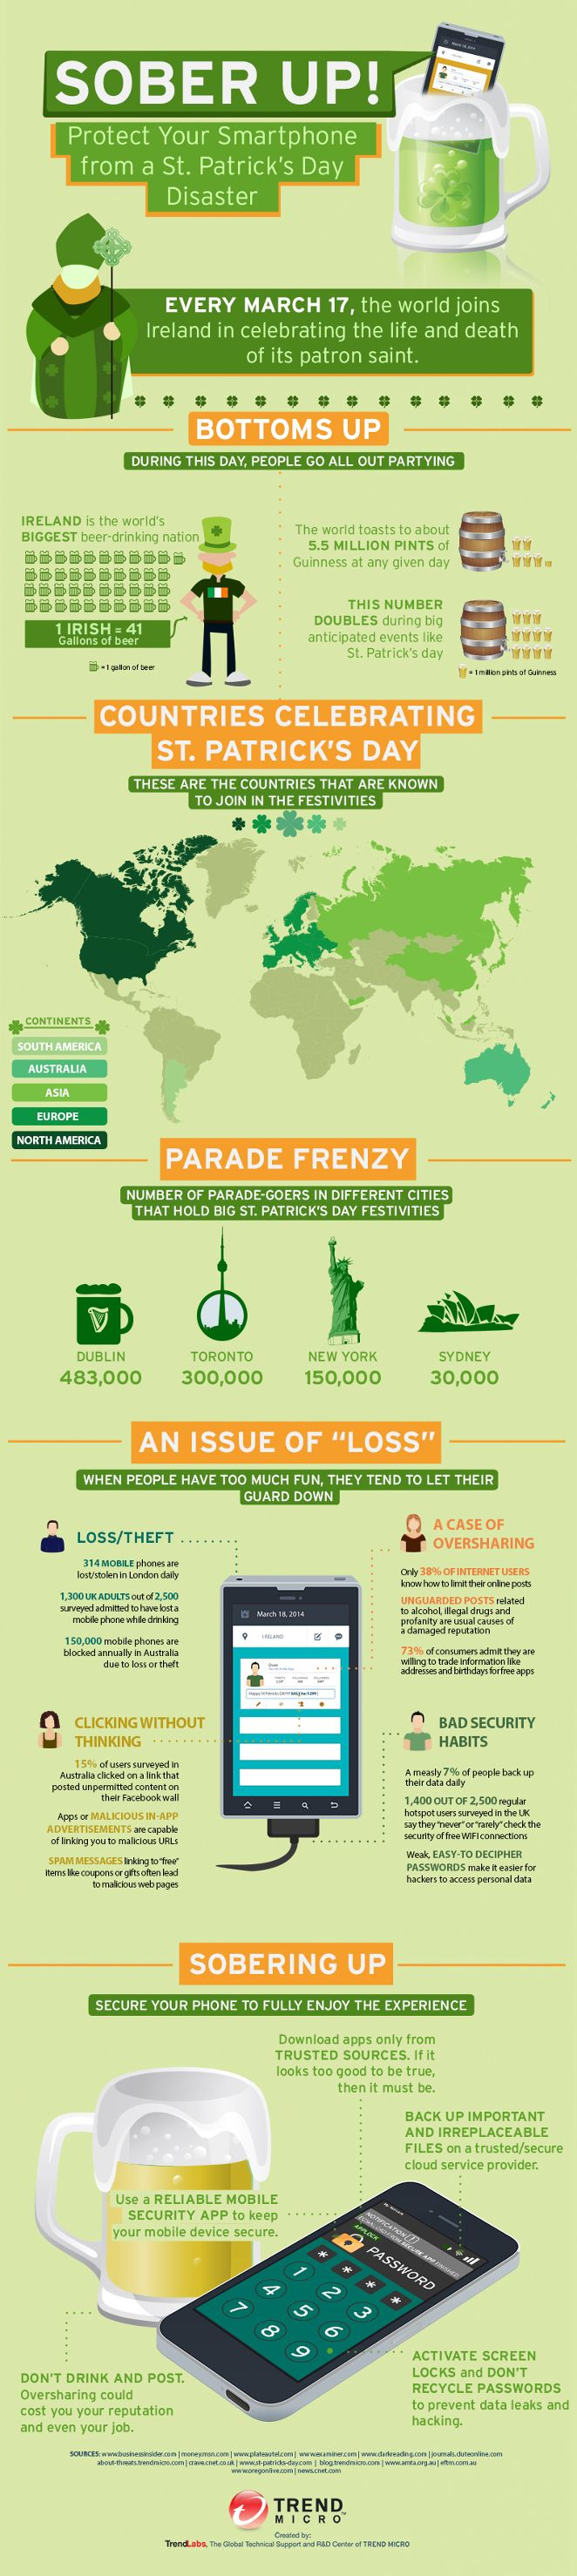 Protect Your Smartphone from a St. Patrick's Day Disaster #infographic #Smartphone #Festival